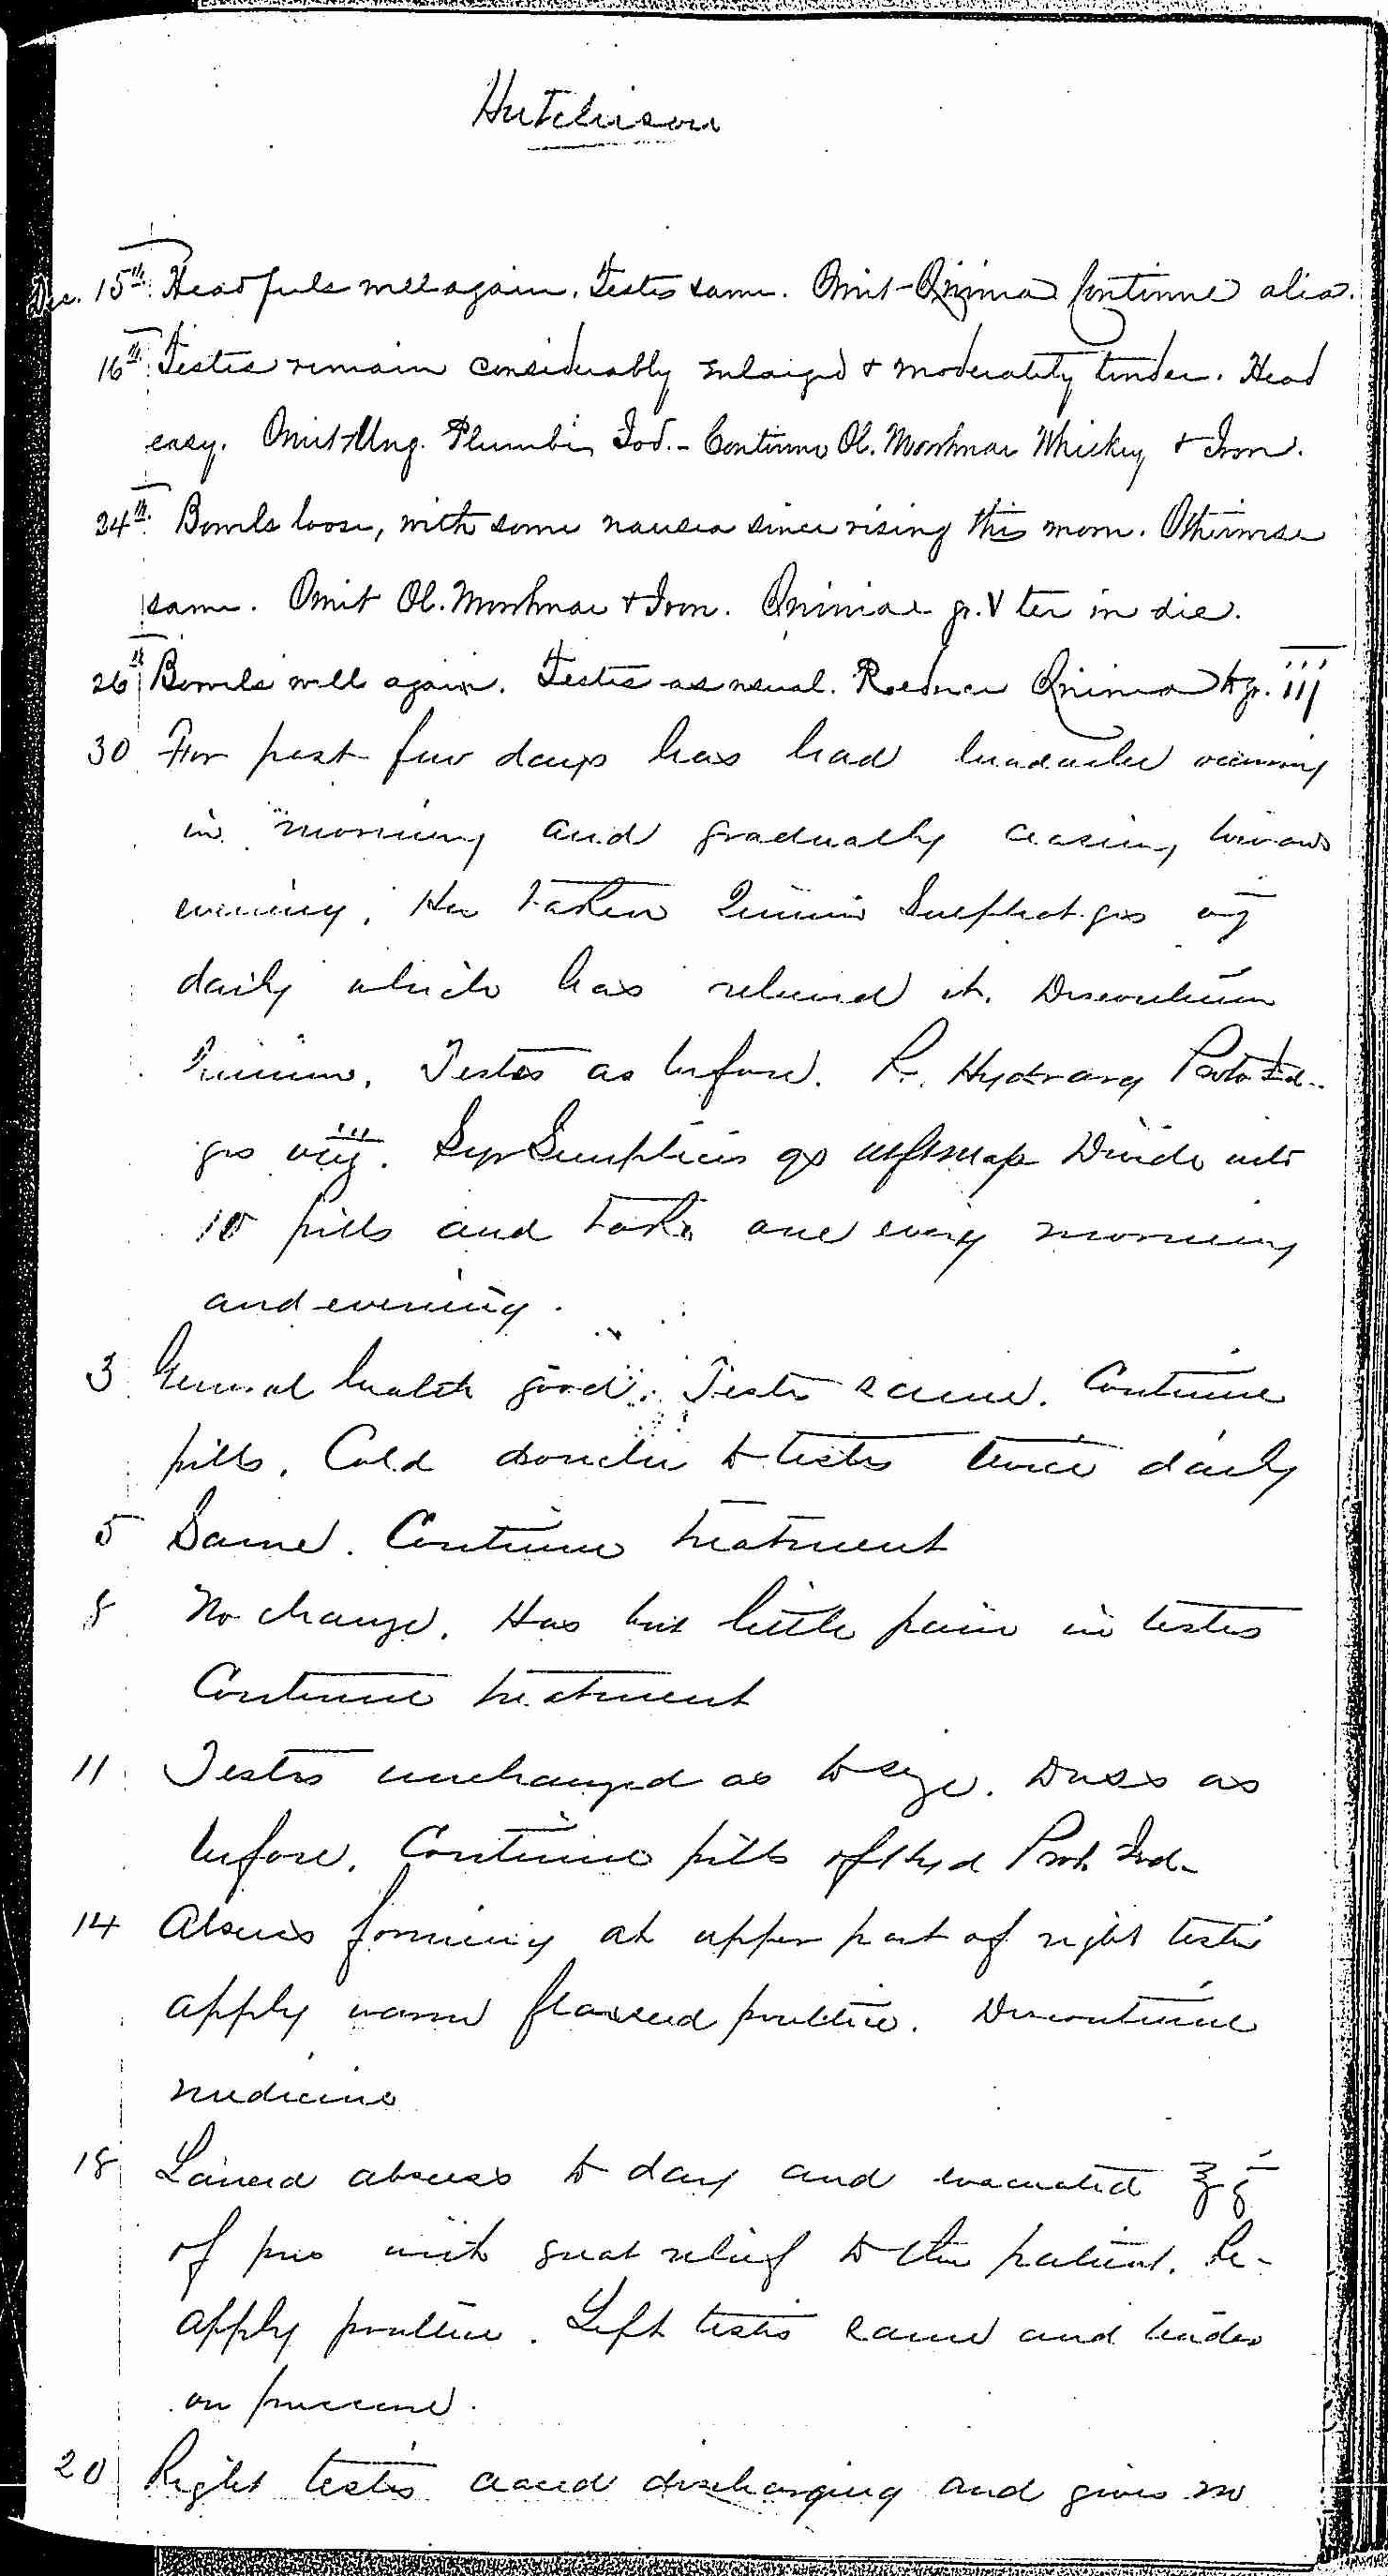 Entry for John C. Hutchinson (page 3 of 4) in the log Hospital Tickets and Case Papers - Naval Hospital - Washington, D.C. - 1868-69